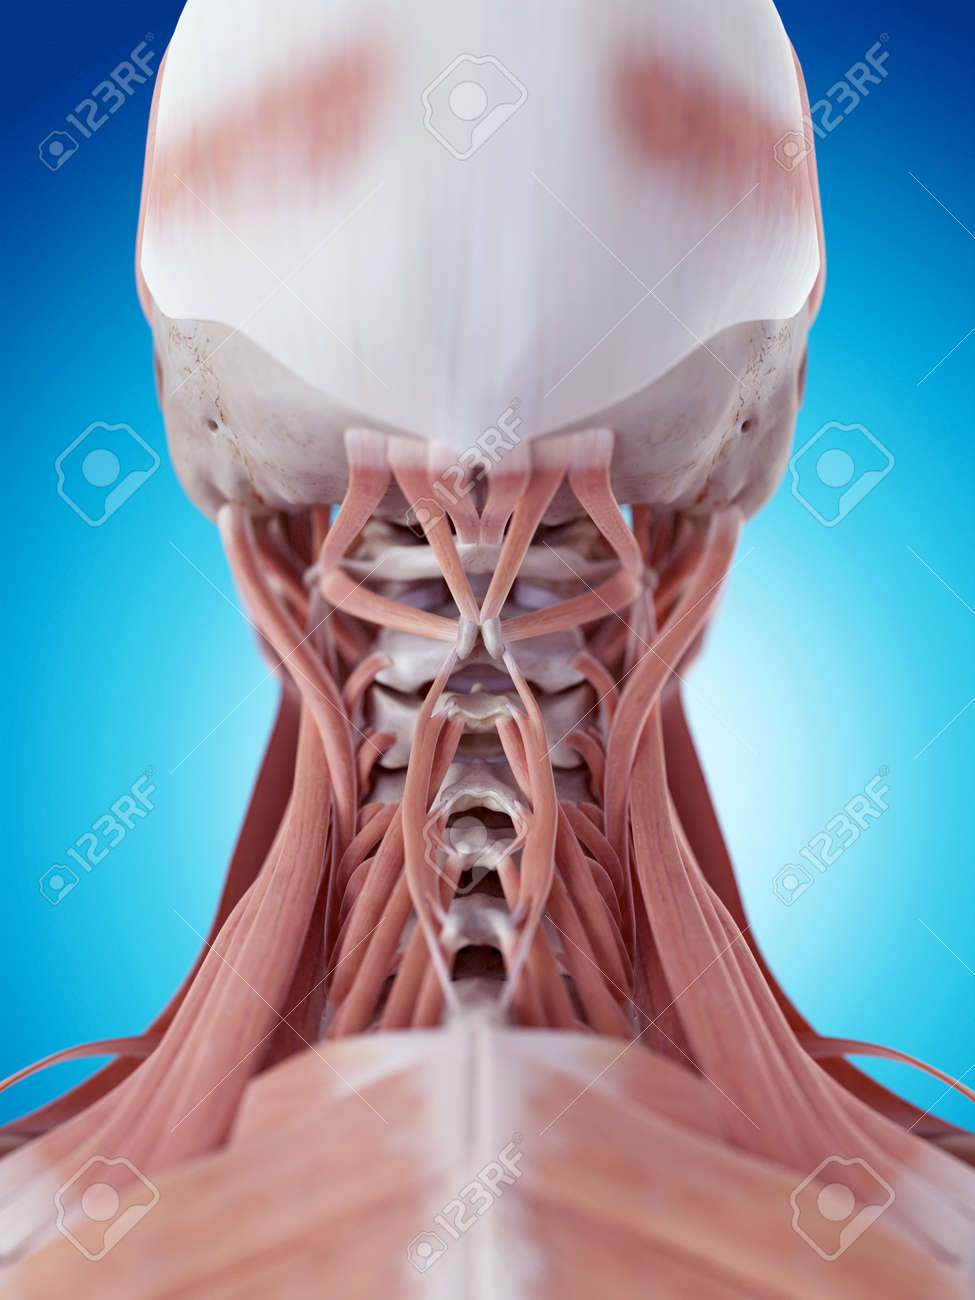 Medically Accurate Illustration Of The Neck Muscles Stock Photo